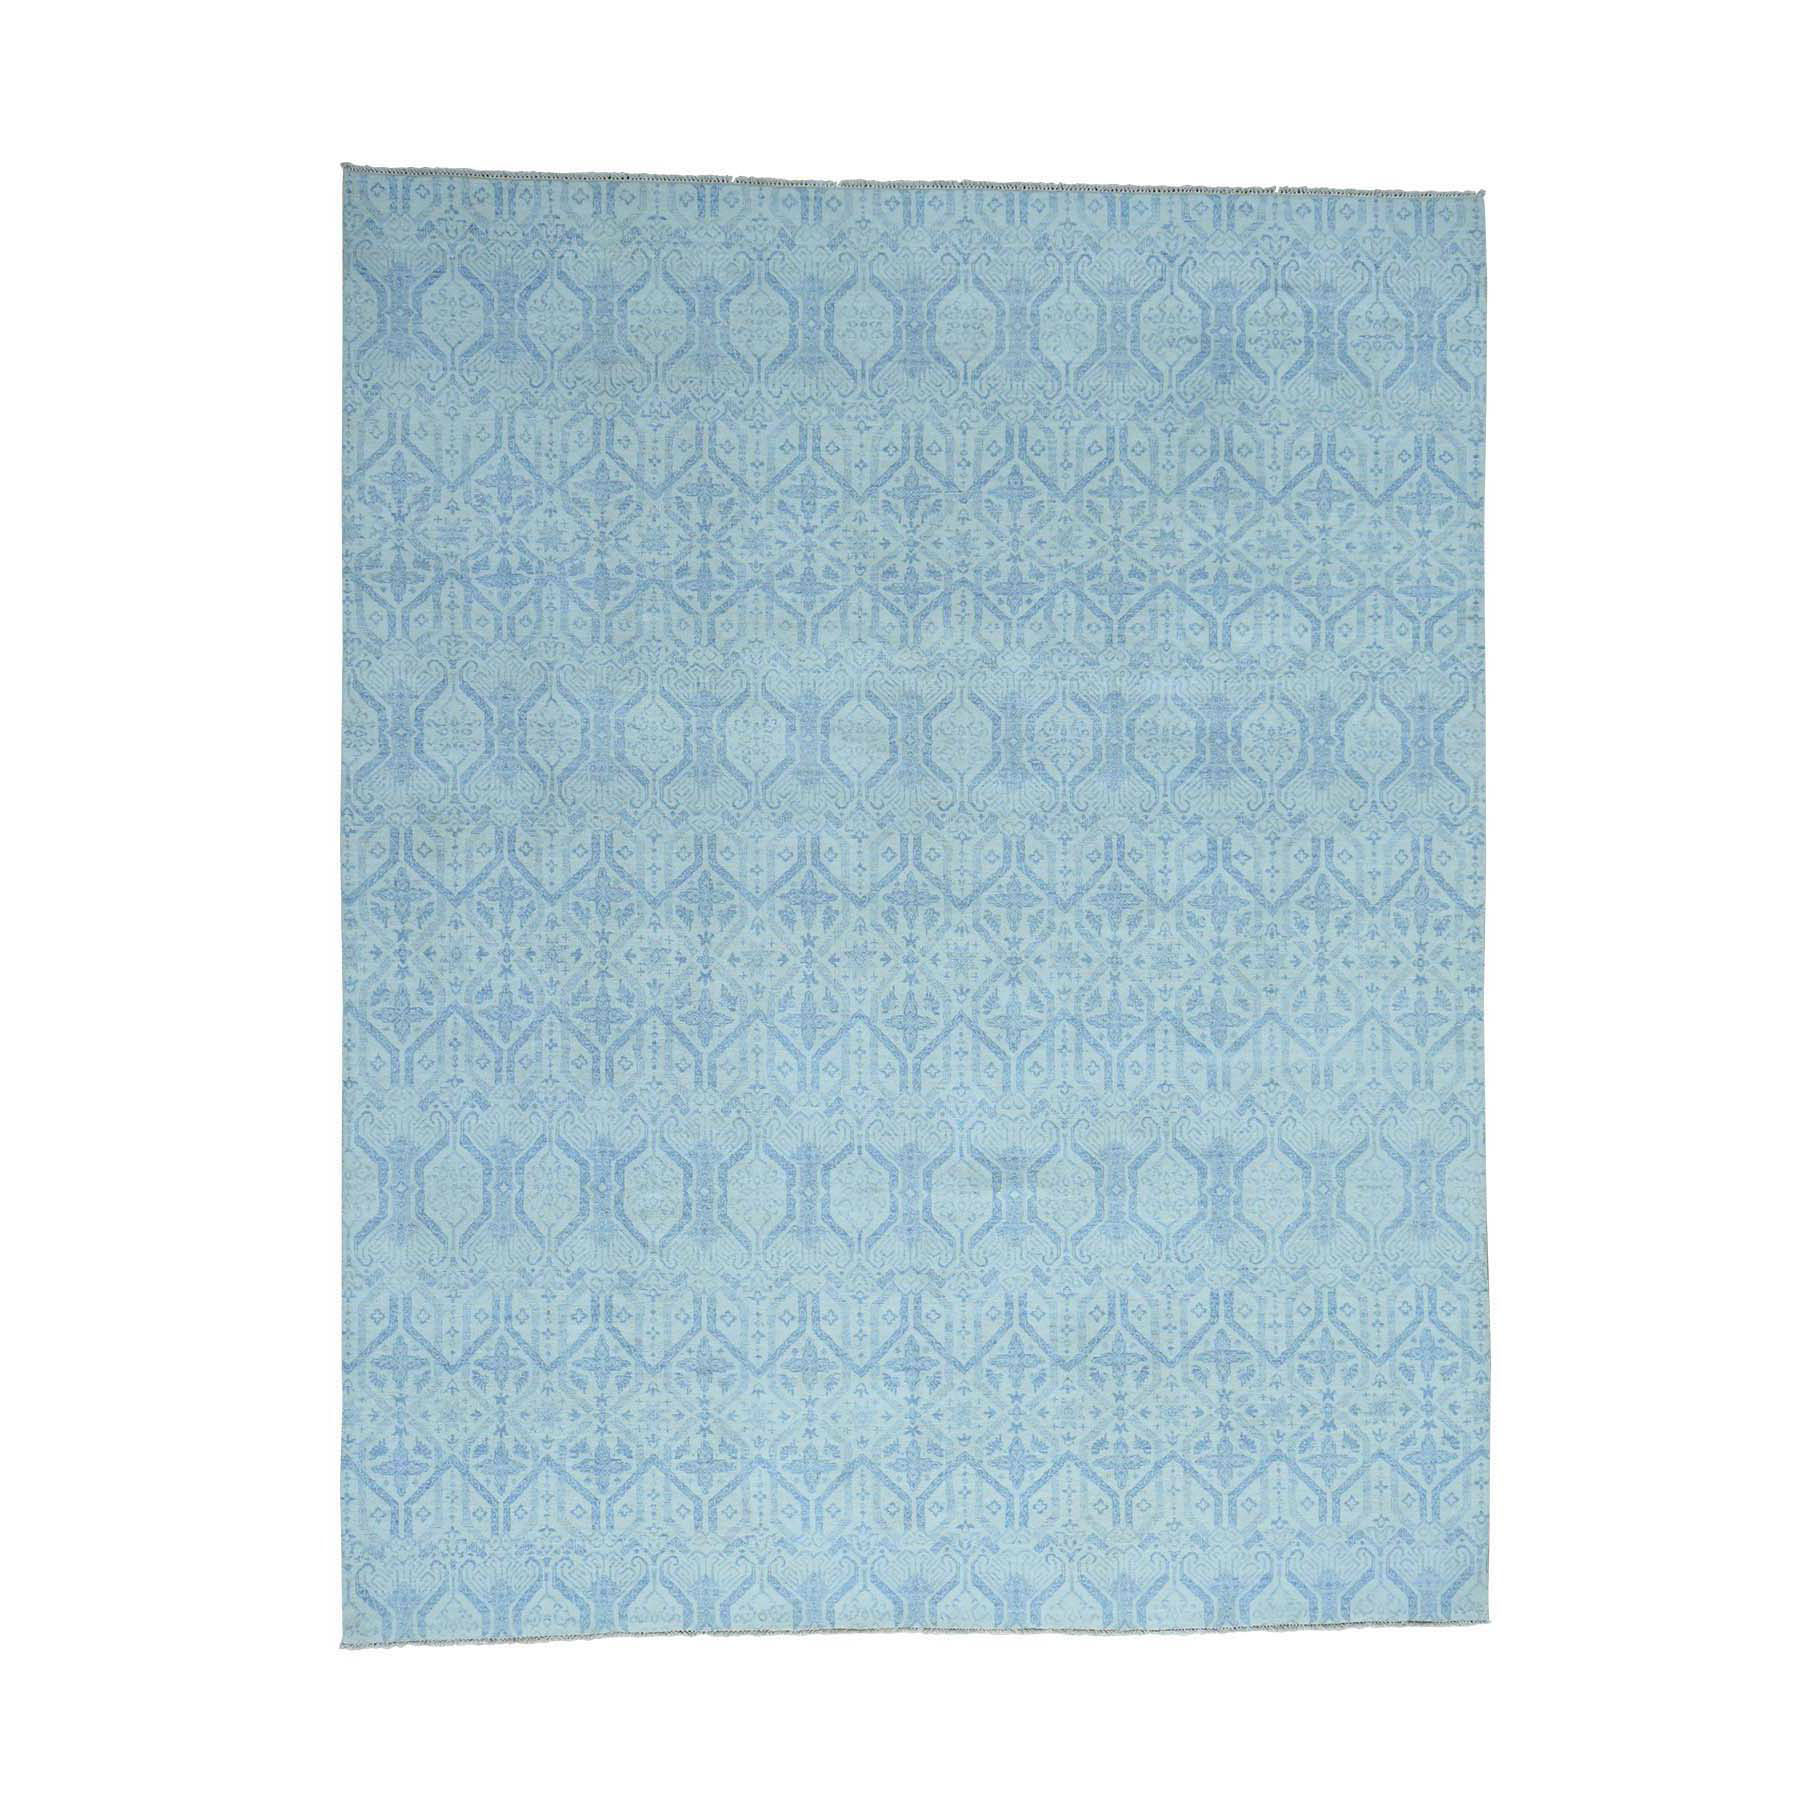 ikat and suzani design rugs LUV312498